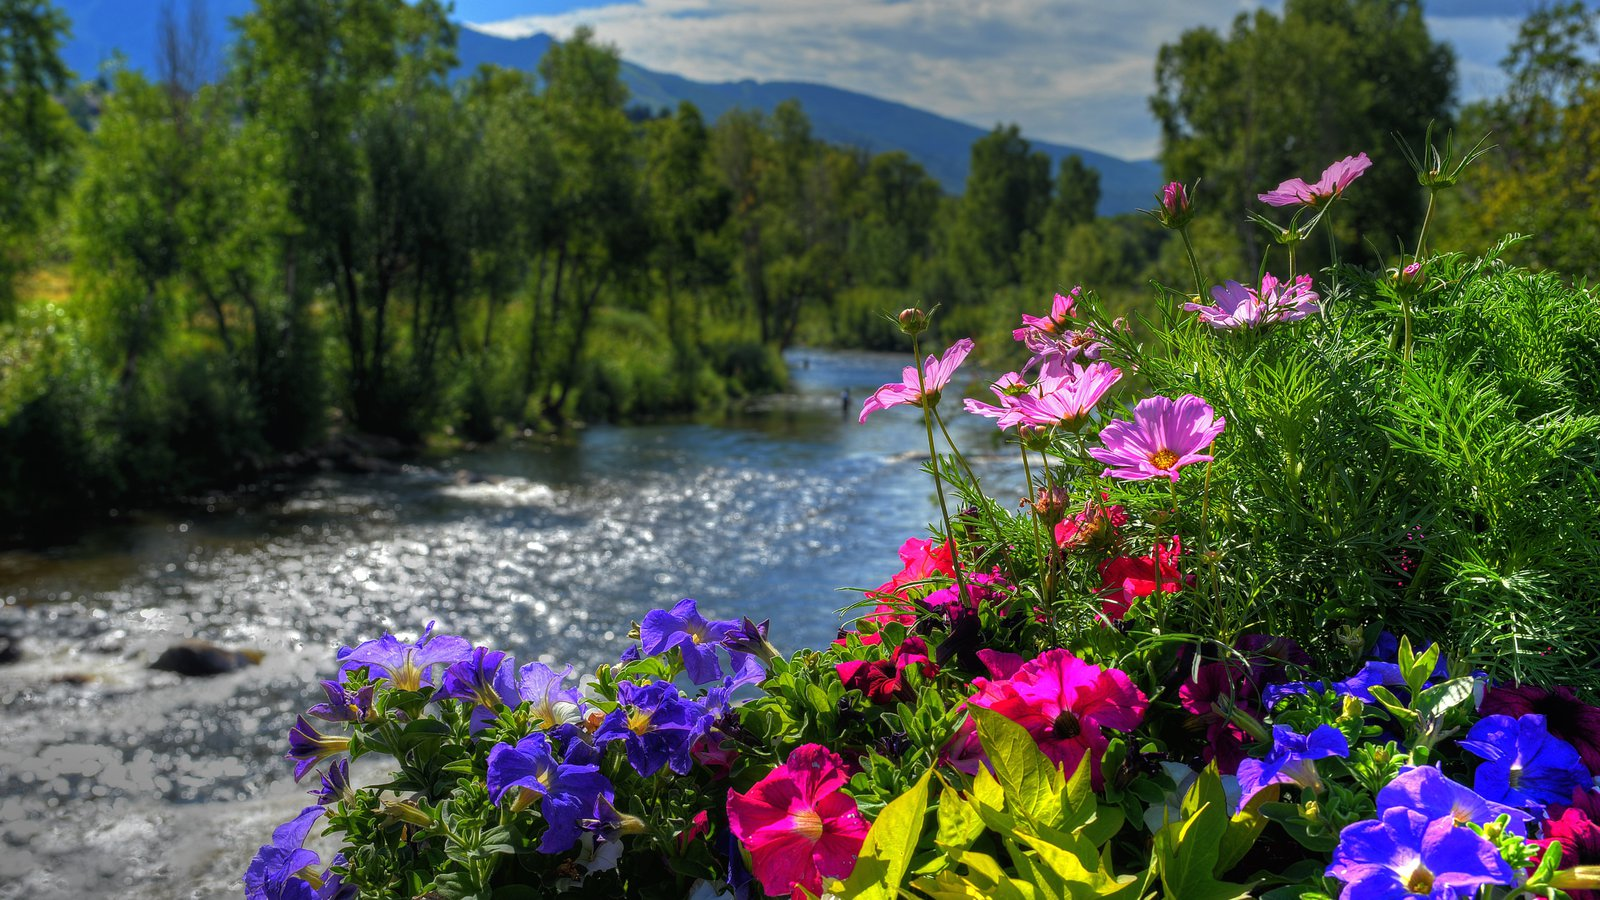 Steamboat Ski Resort Which Includes Flowers A River Or Creek And Tranquil Scenes